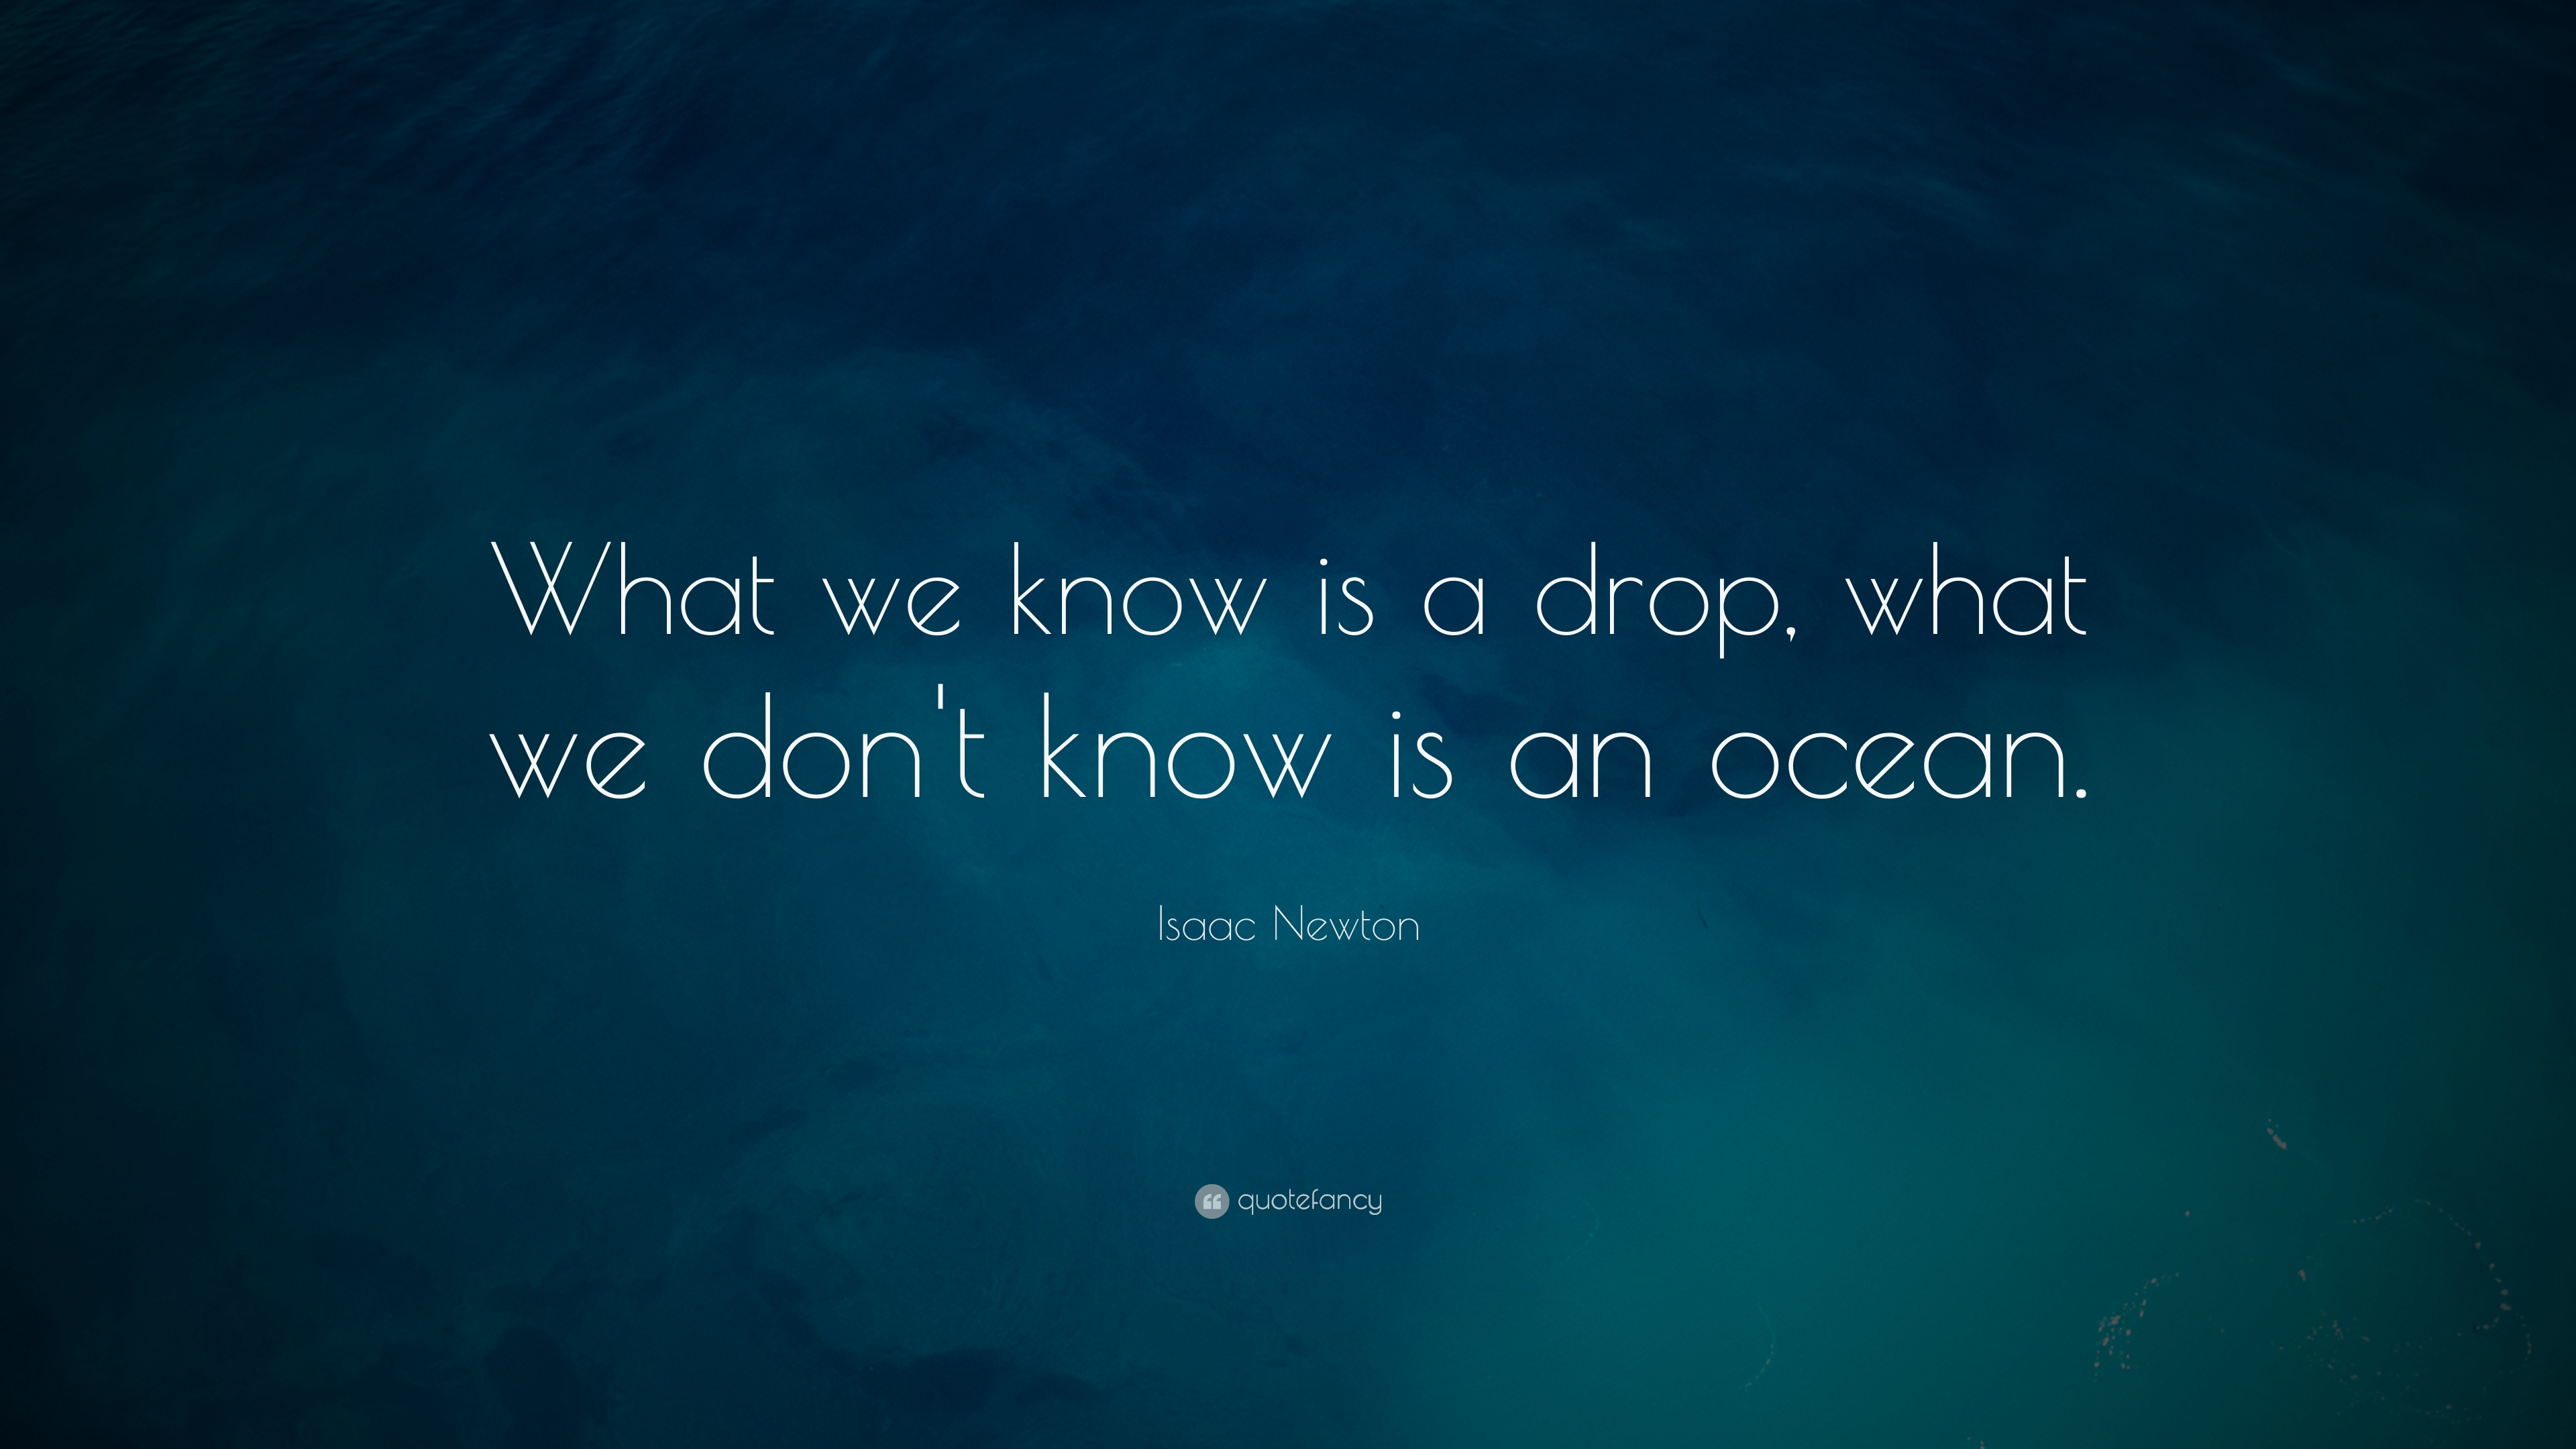 Isaac Newton Quotes | Isaac Newton Quote What We Know Is A Drop What We Don T Know Is